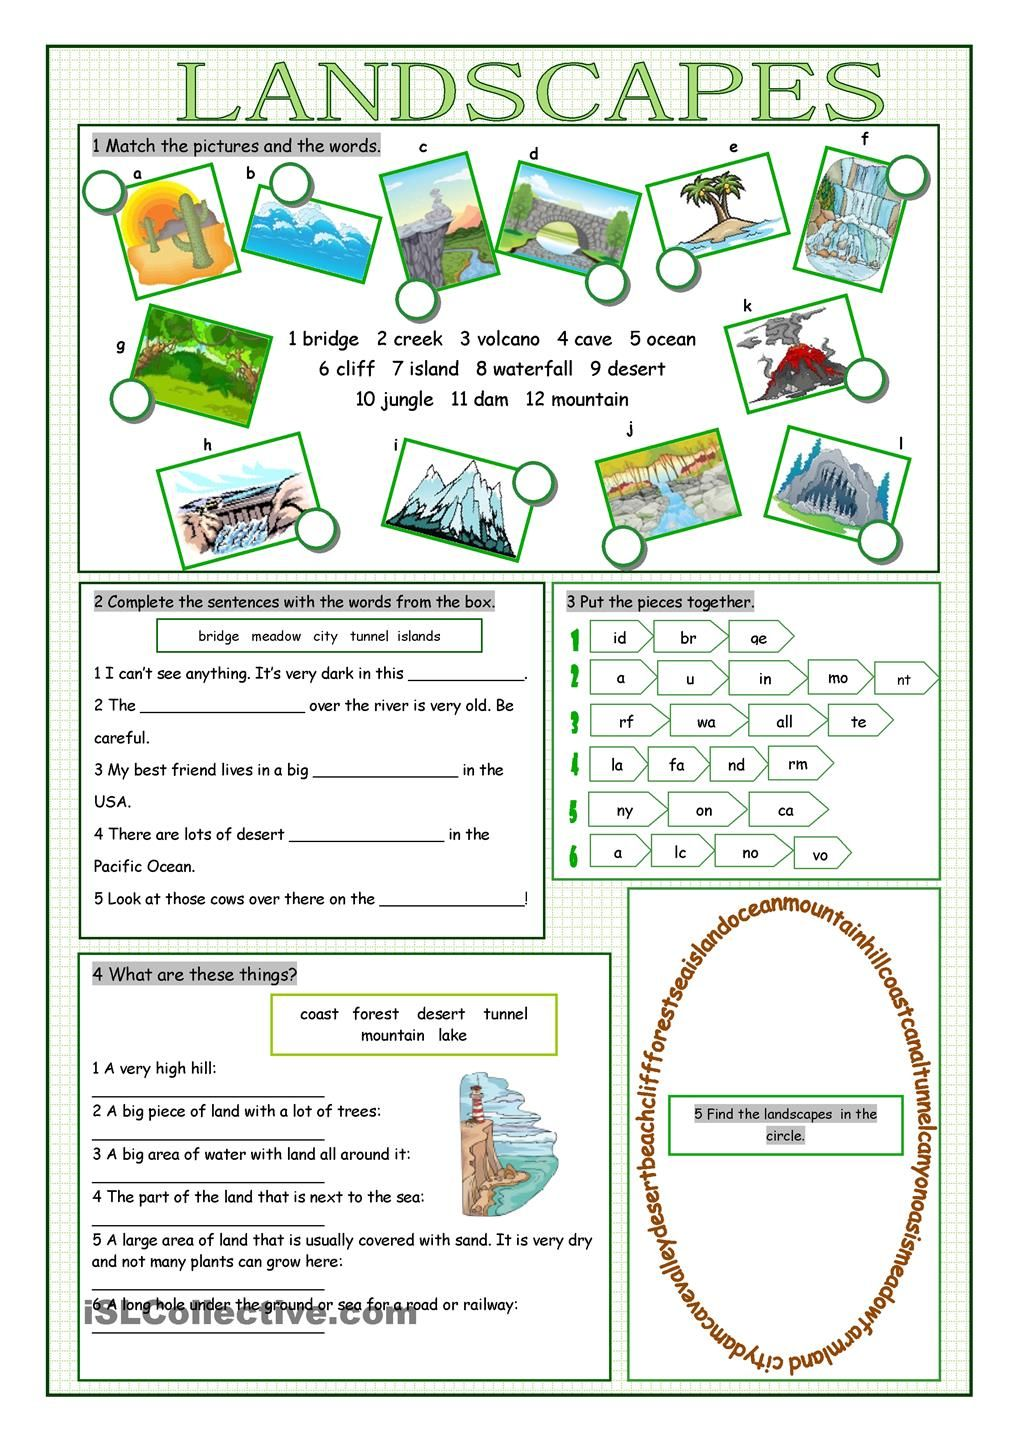 Worksheet Activities To Improve Vocabulary appearance vocabulary exercises pinterest landscapes free esl worksheets